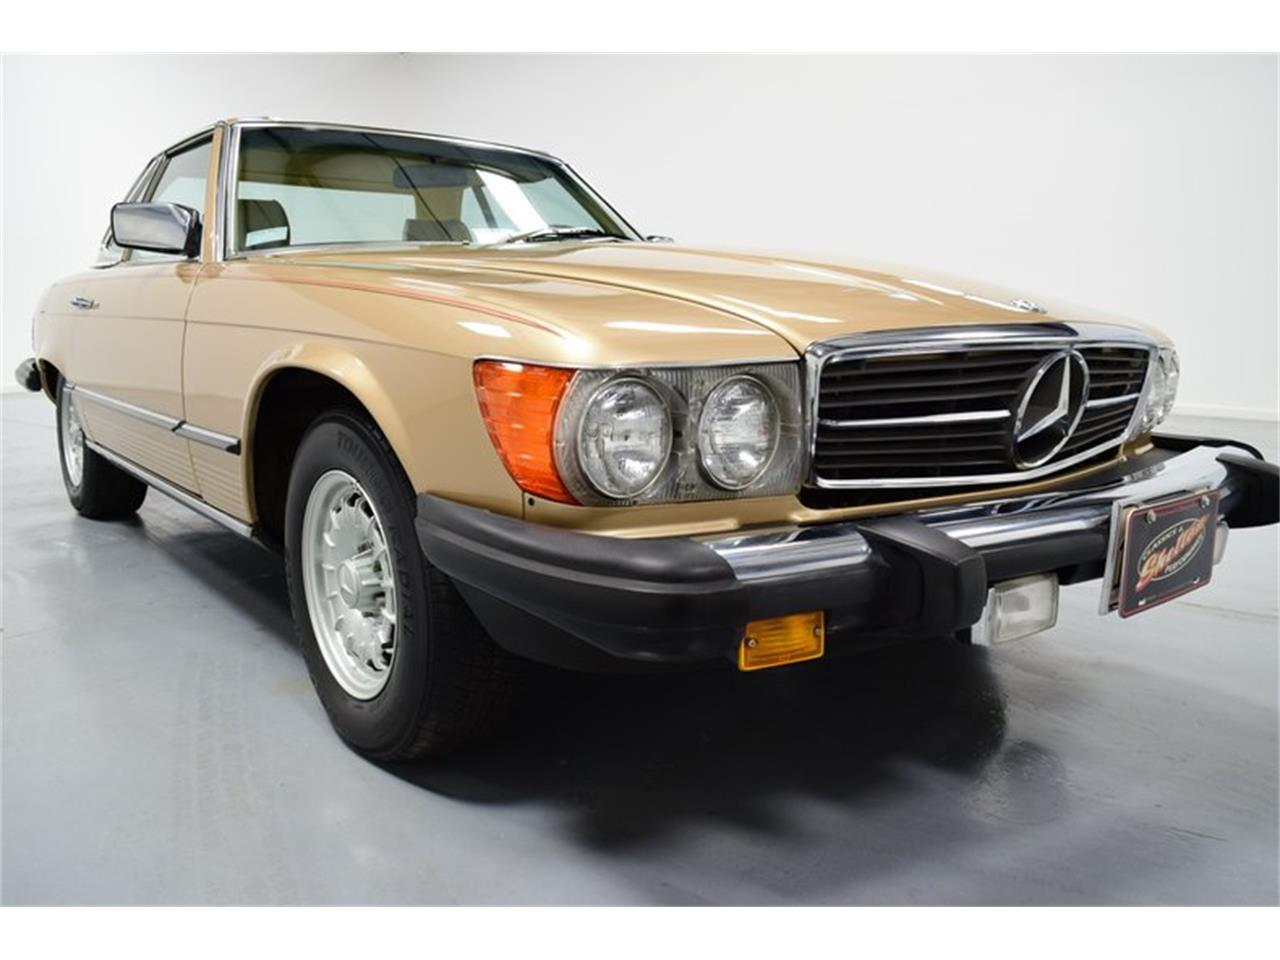 1983 Mercedes-Benz 380 for sale in Mooresville, NC – photo 49